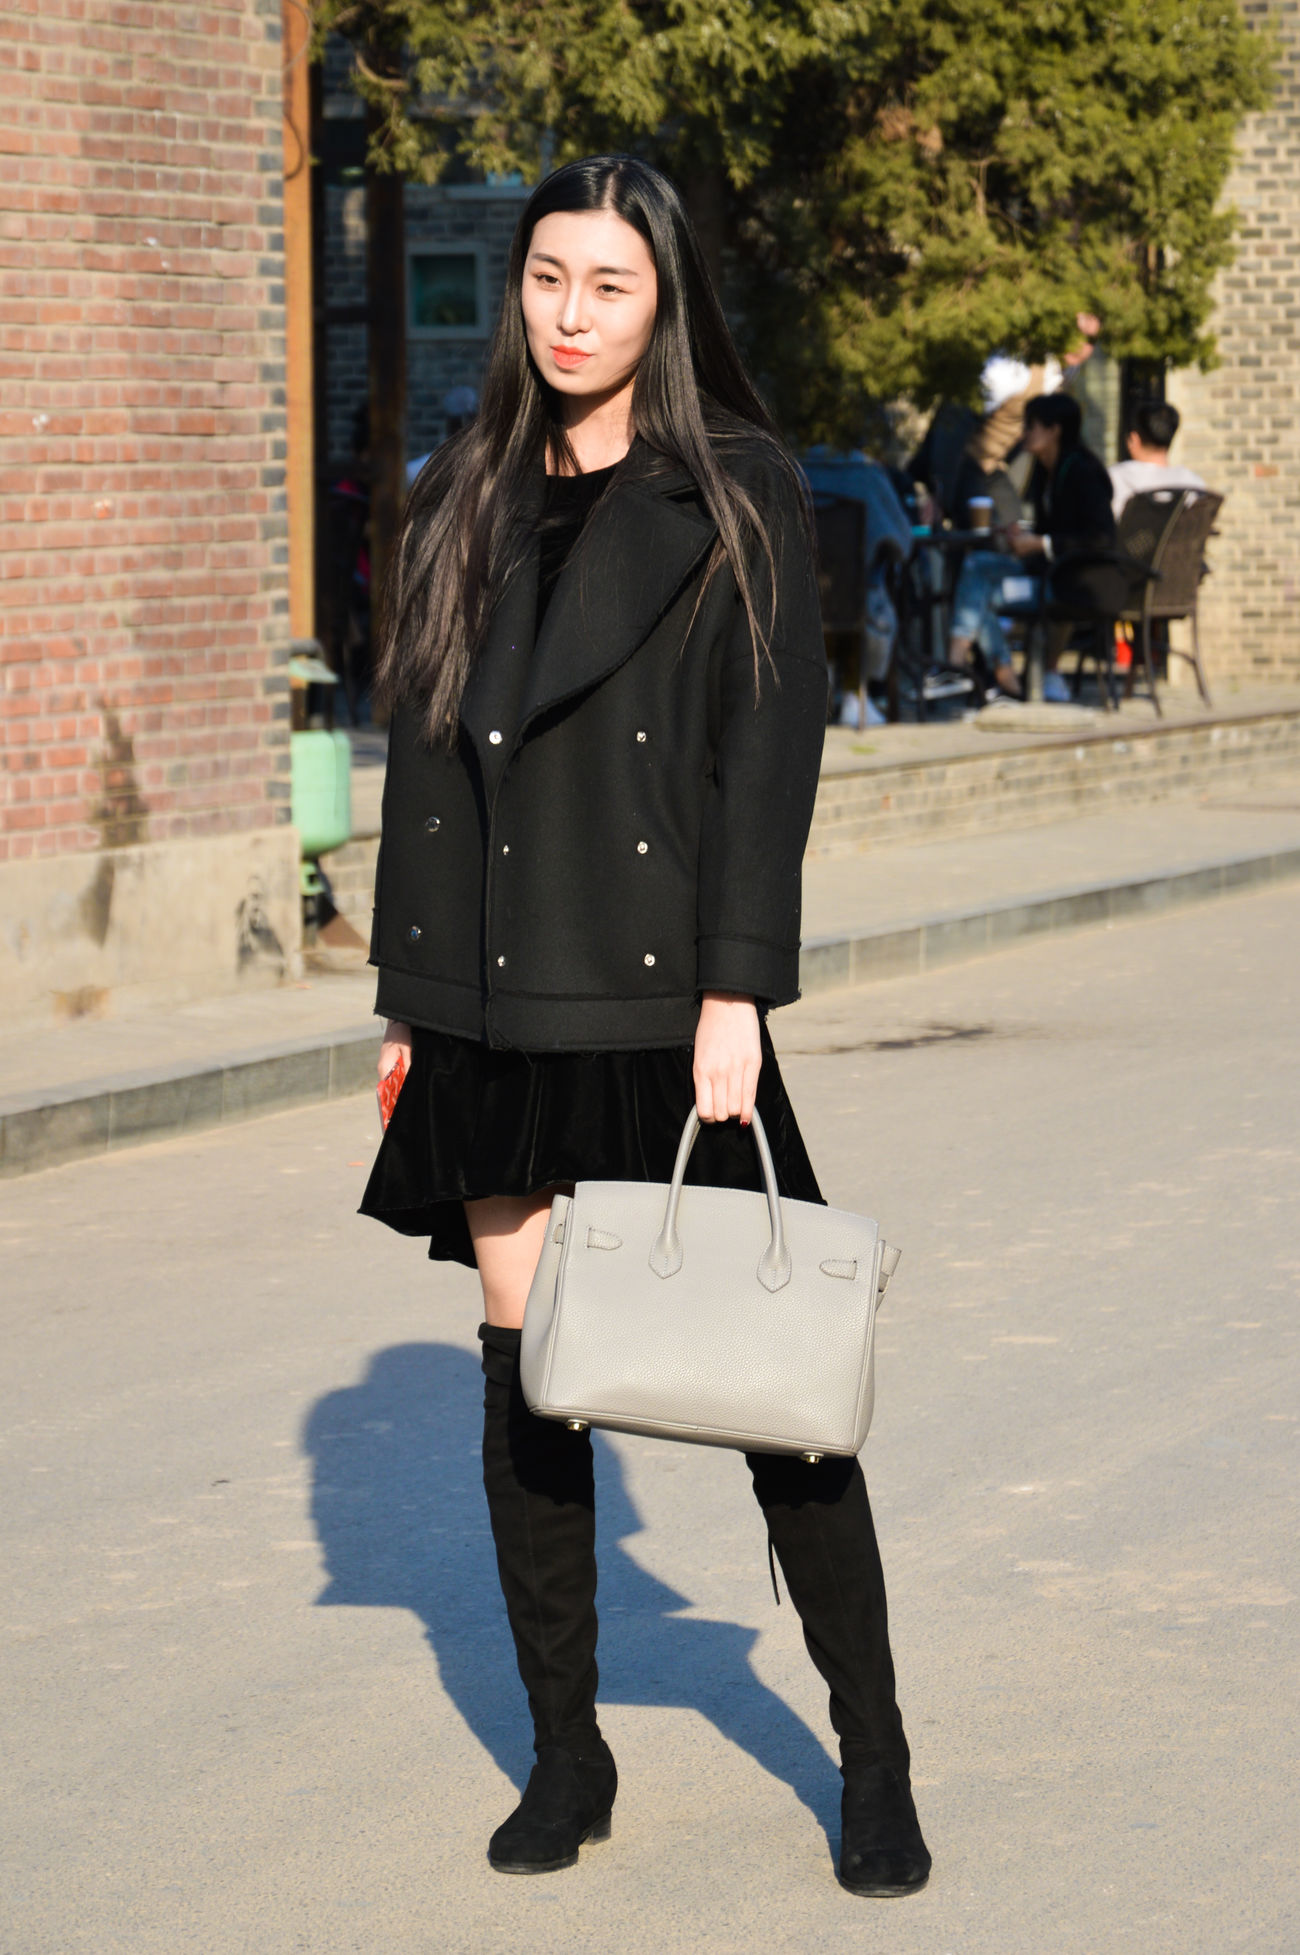 Adult Adults Only Arts Culture And Entertainment Day Fashion Full Length Jacket Leather Leather Jacket Long Hair One Person One Woman Only One Young Woman Only Only Women Outdoors People Portrait Real People Smiling Warm Clothing Young Adult Women Around The World